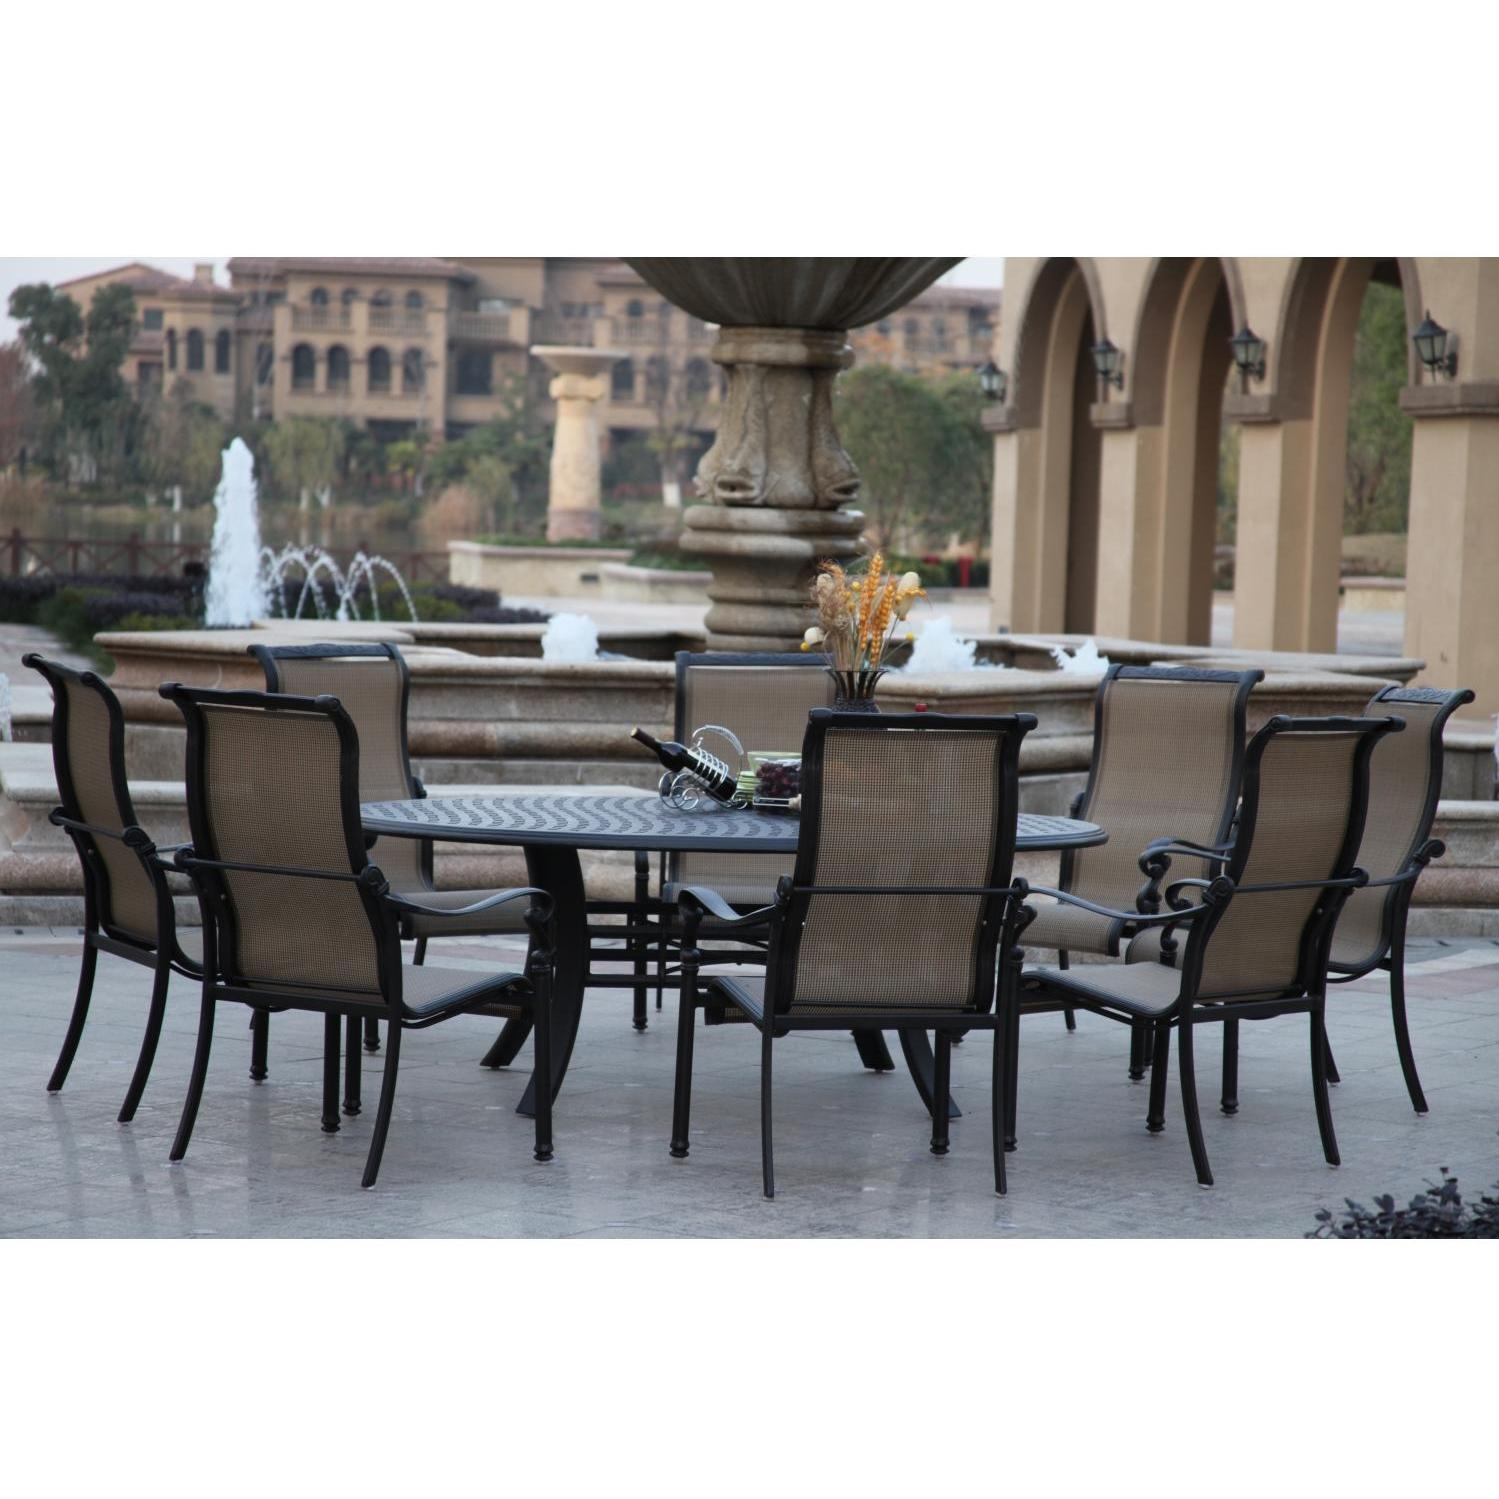 patio dining sets for 8 photo - 7